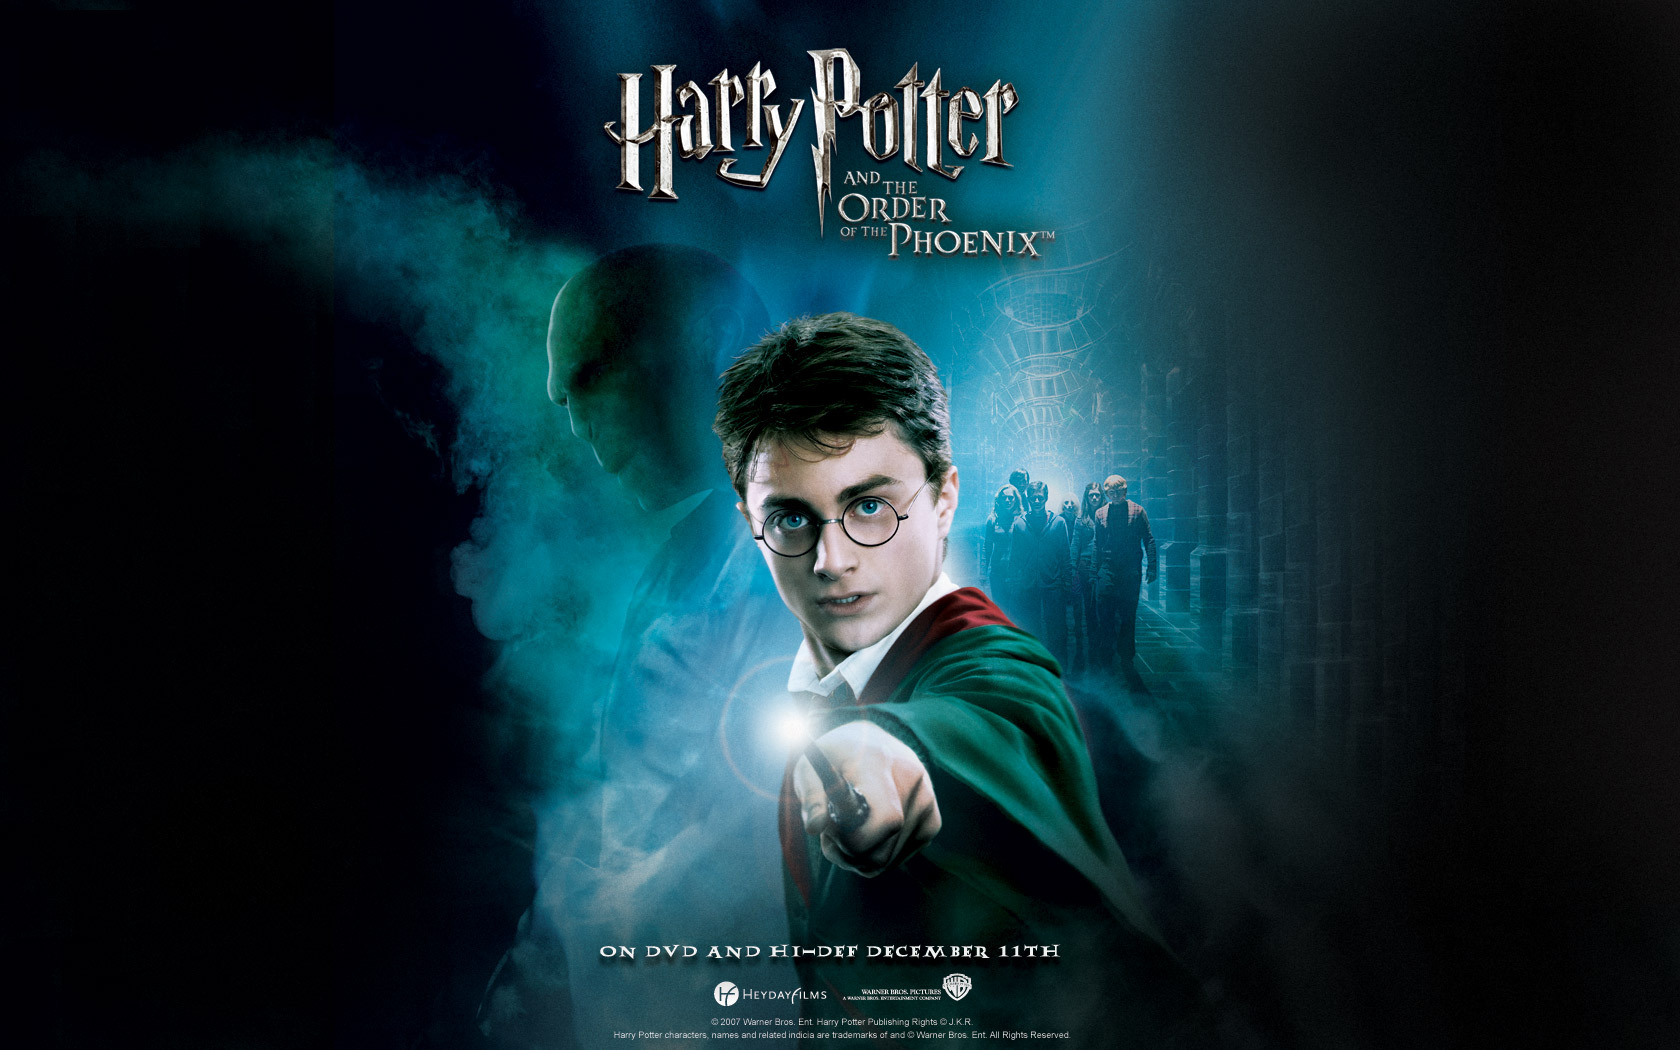 Order of the Phoenix - Harry Potter Wallpaper (931097) - Fanpop